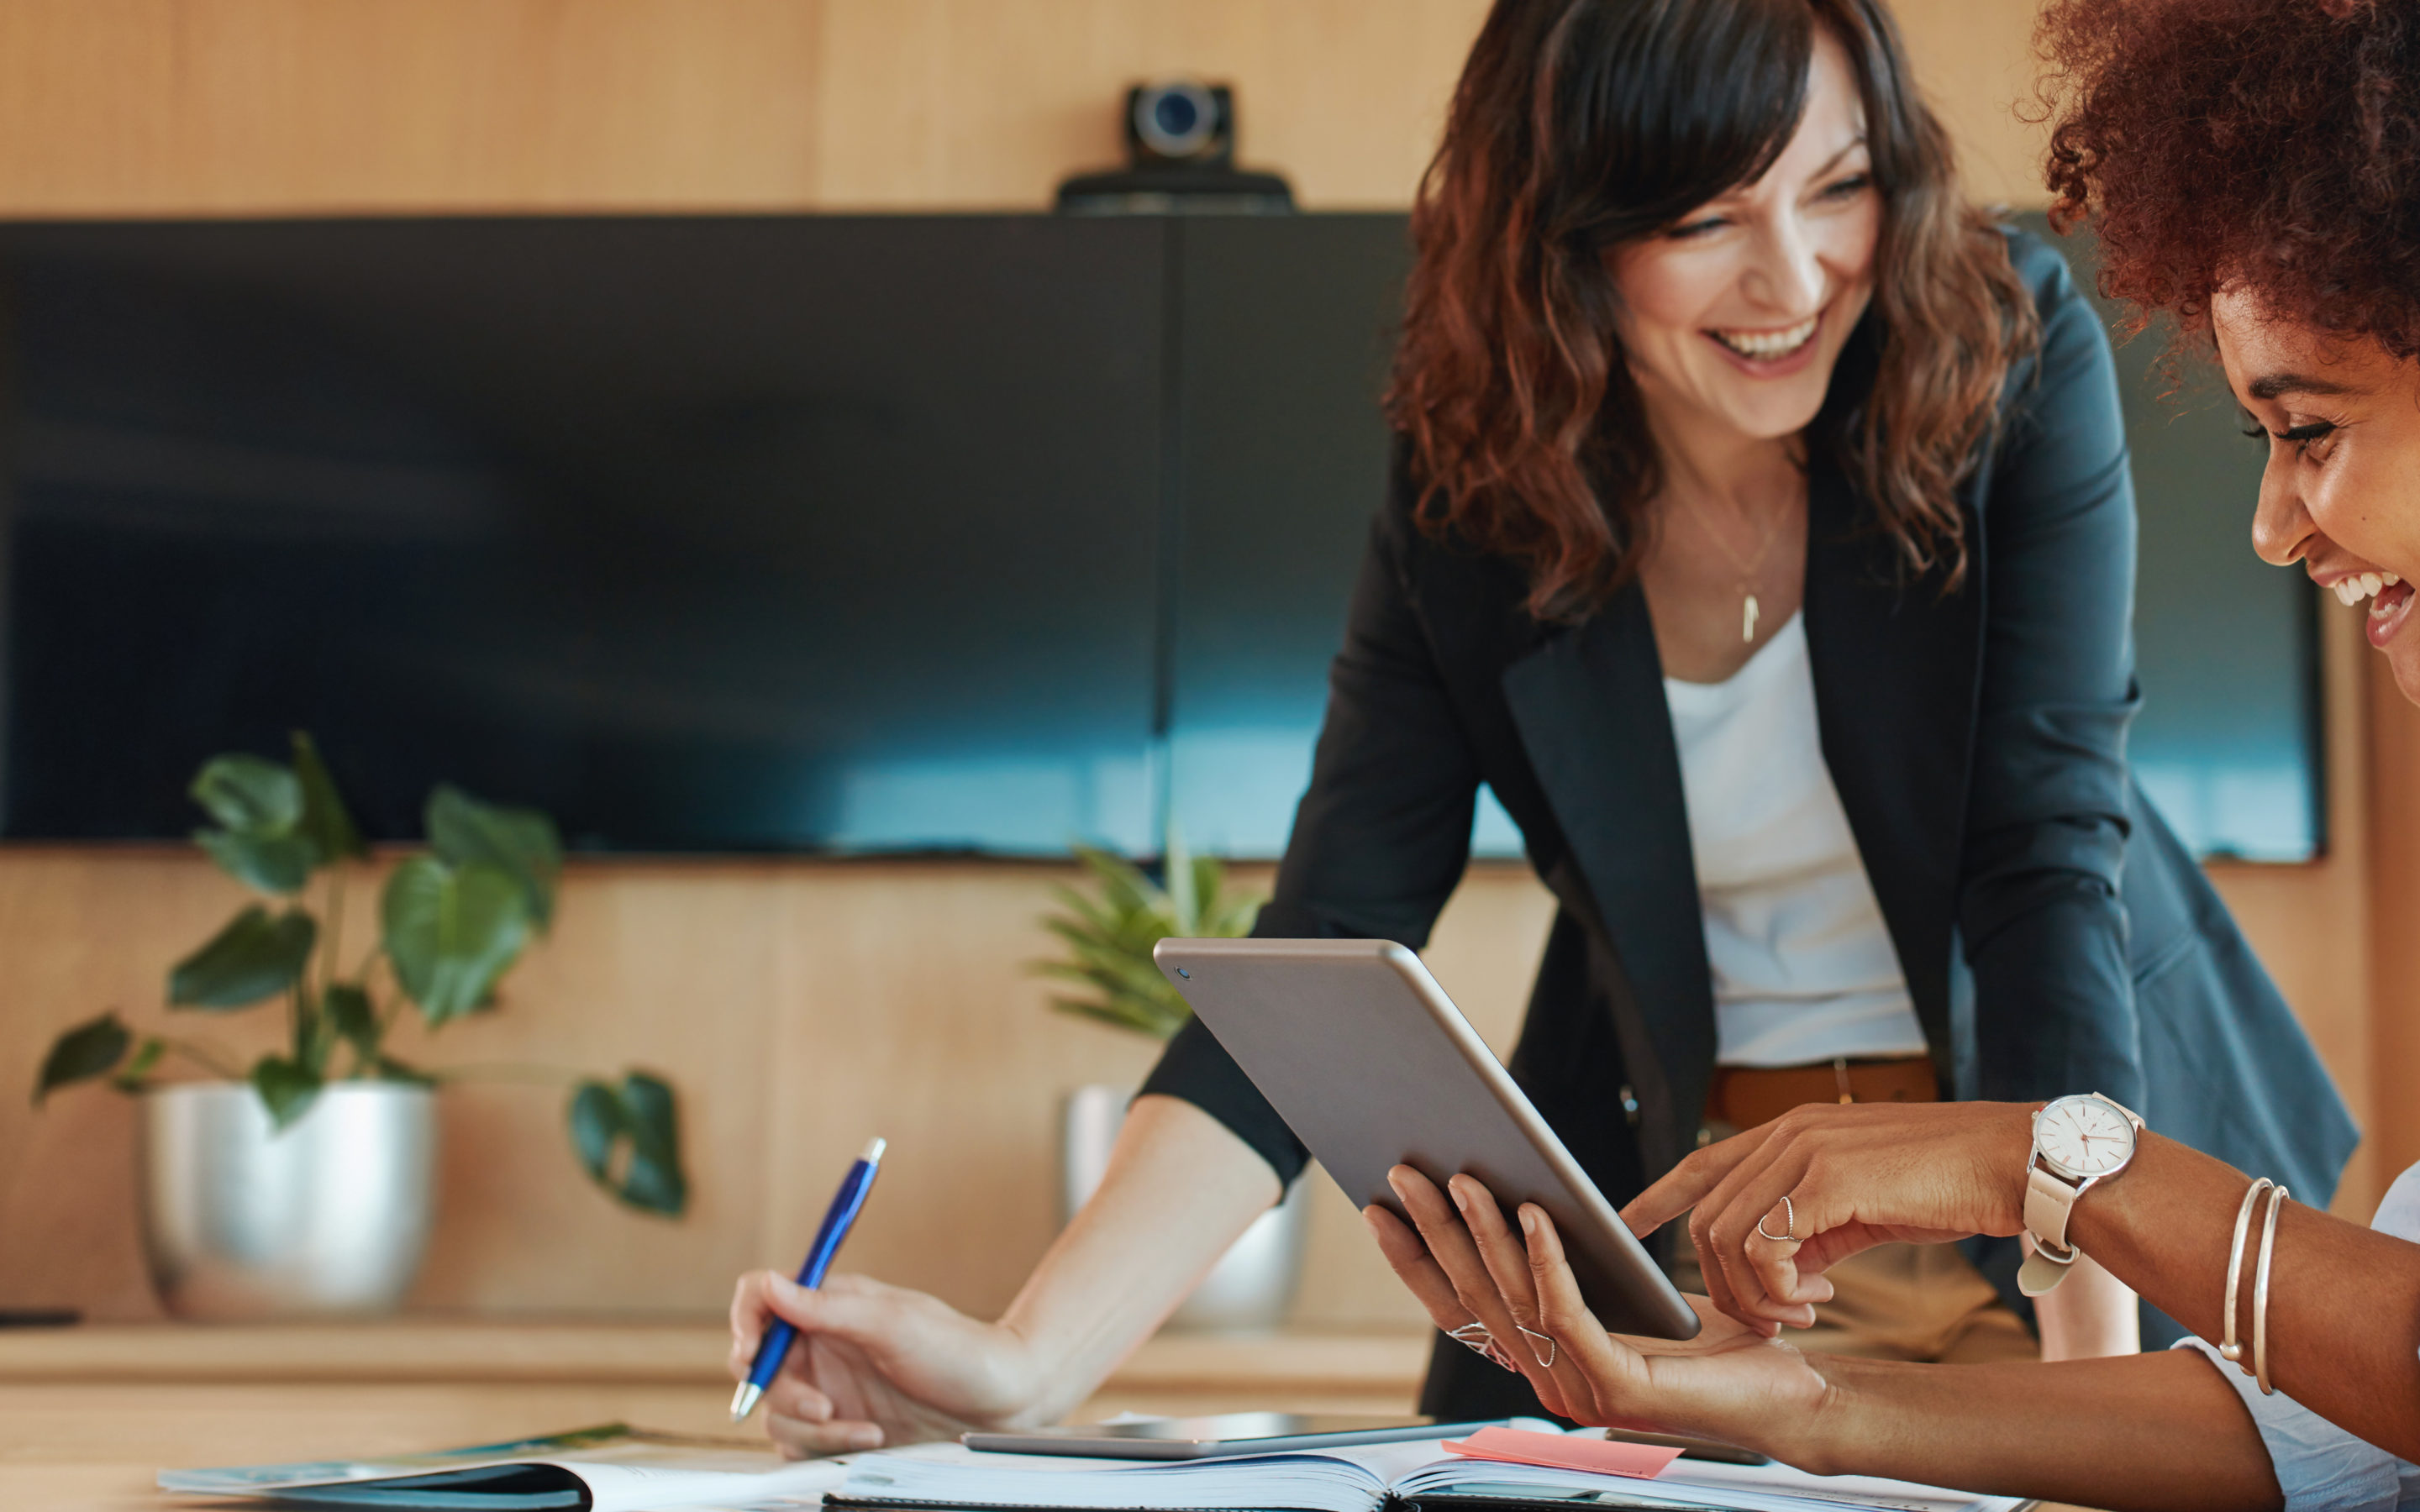 10 Compelling Reasons Your Small Business May Need a Business Coach